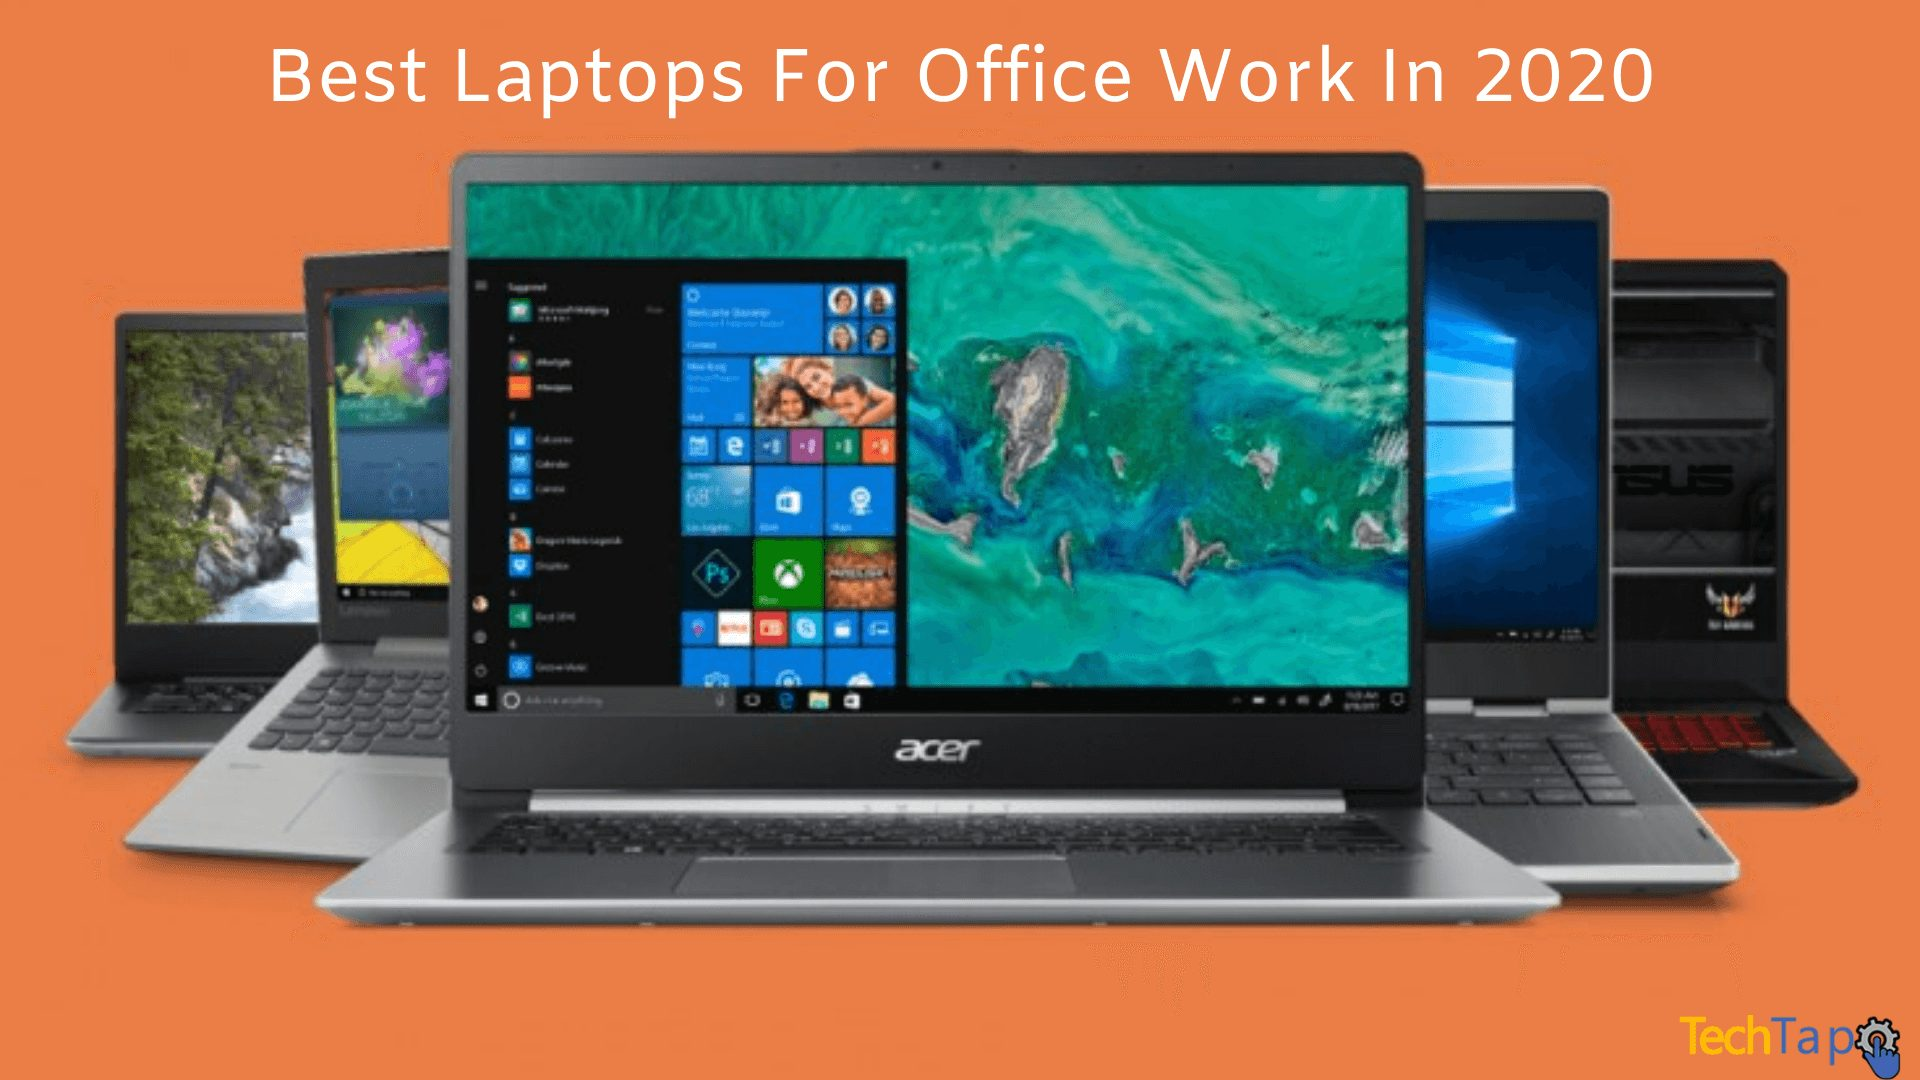 Best Laptops For Office Work In 2020 (1)